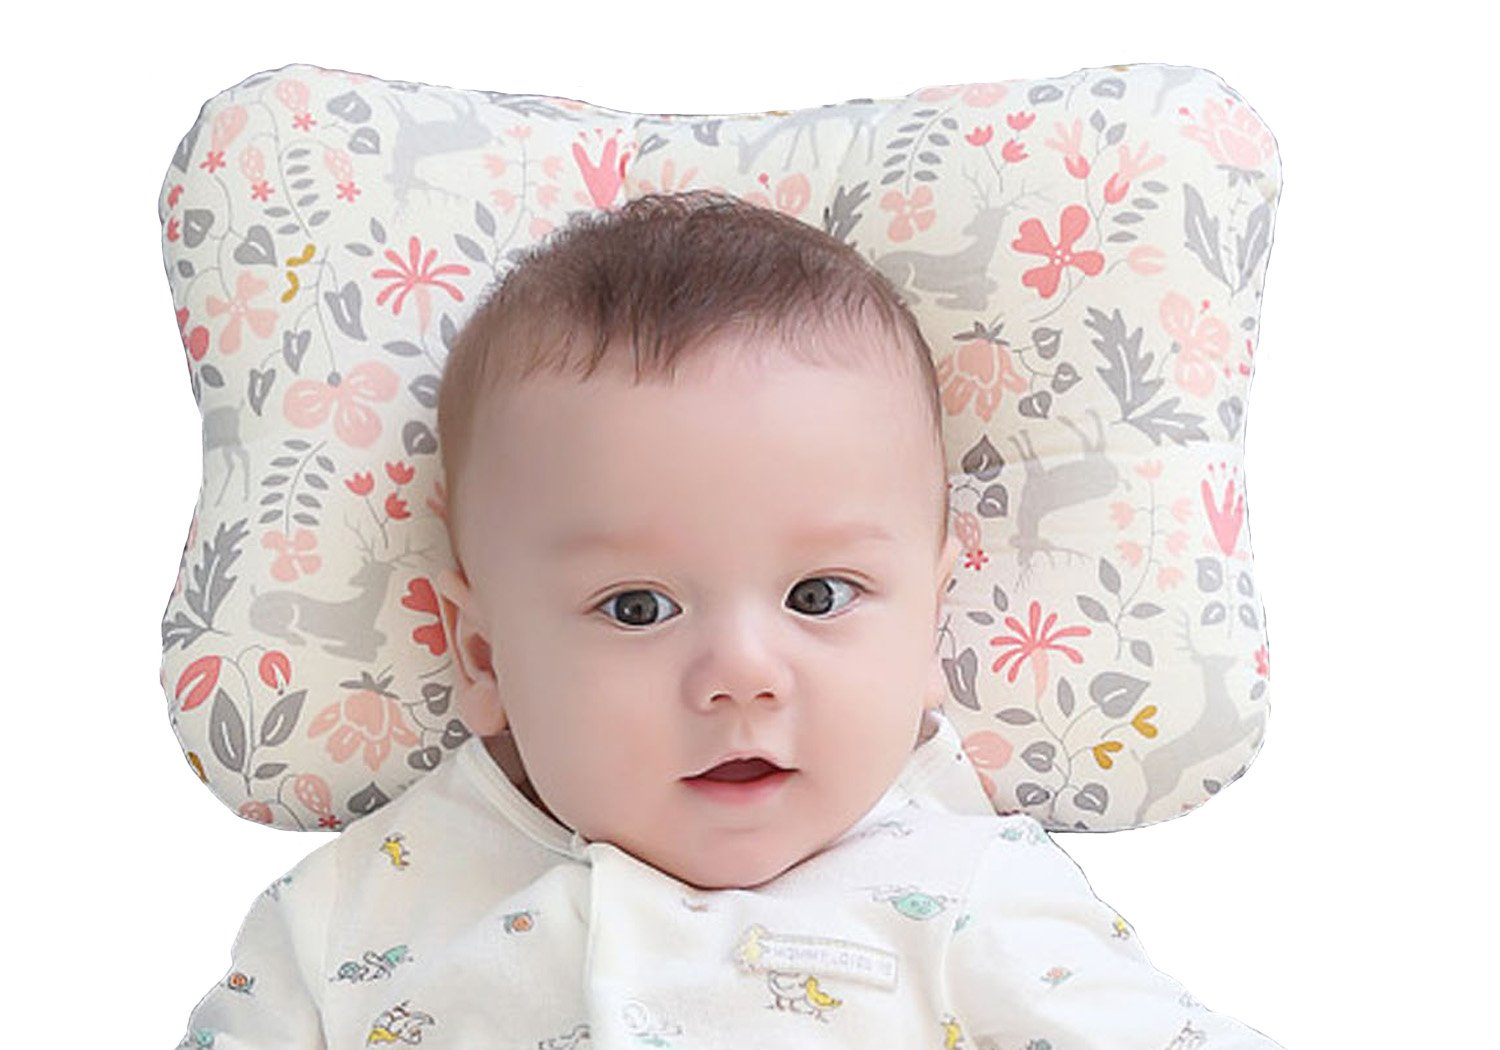 Ventilated Breathable Anti-Suffocation Pillow for Babies 100/% Breathable Cotton